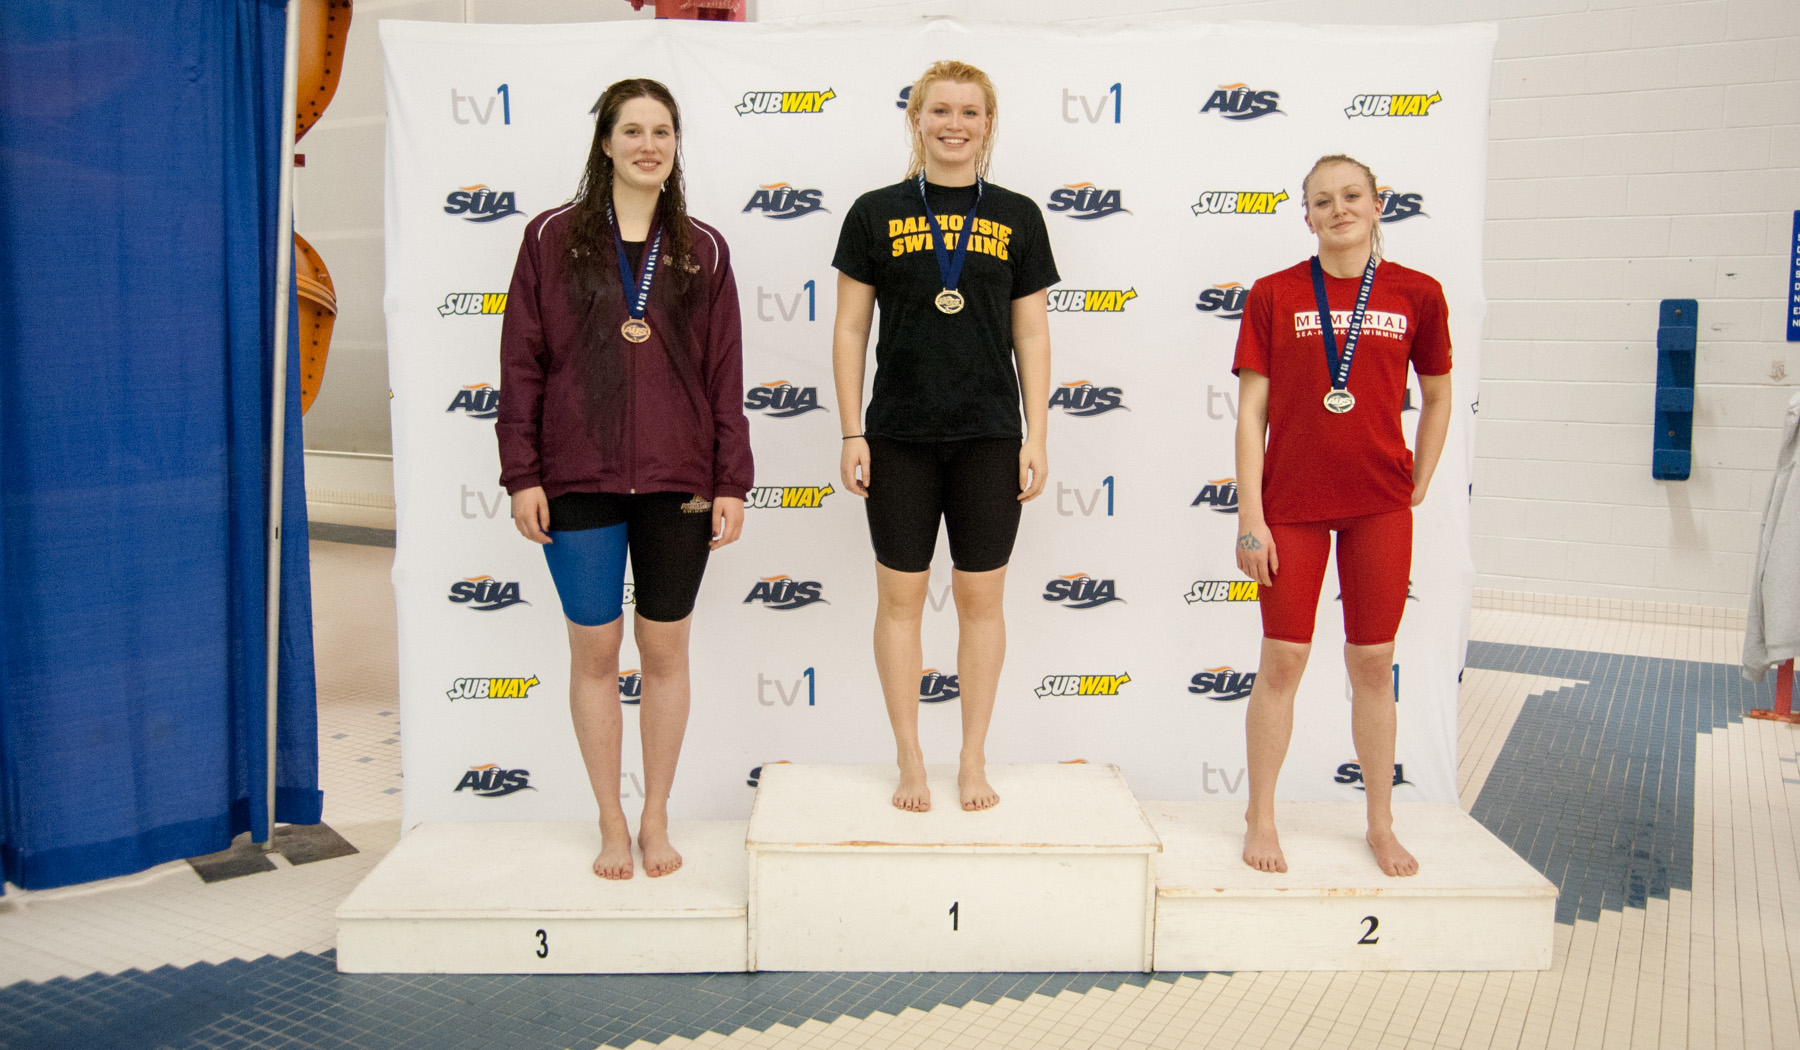 Mounties grab medals on the first day of 2017 Subway AUS Swim Championship